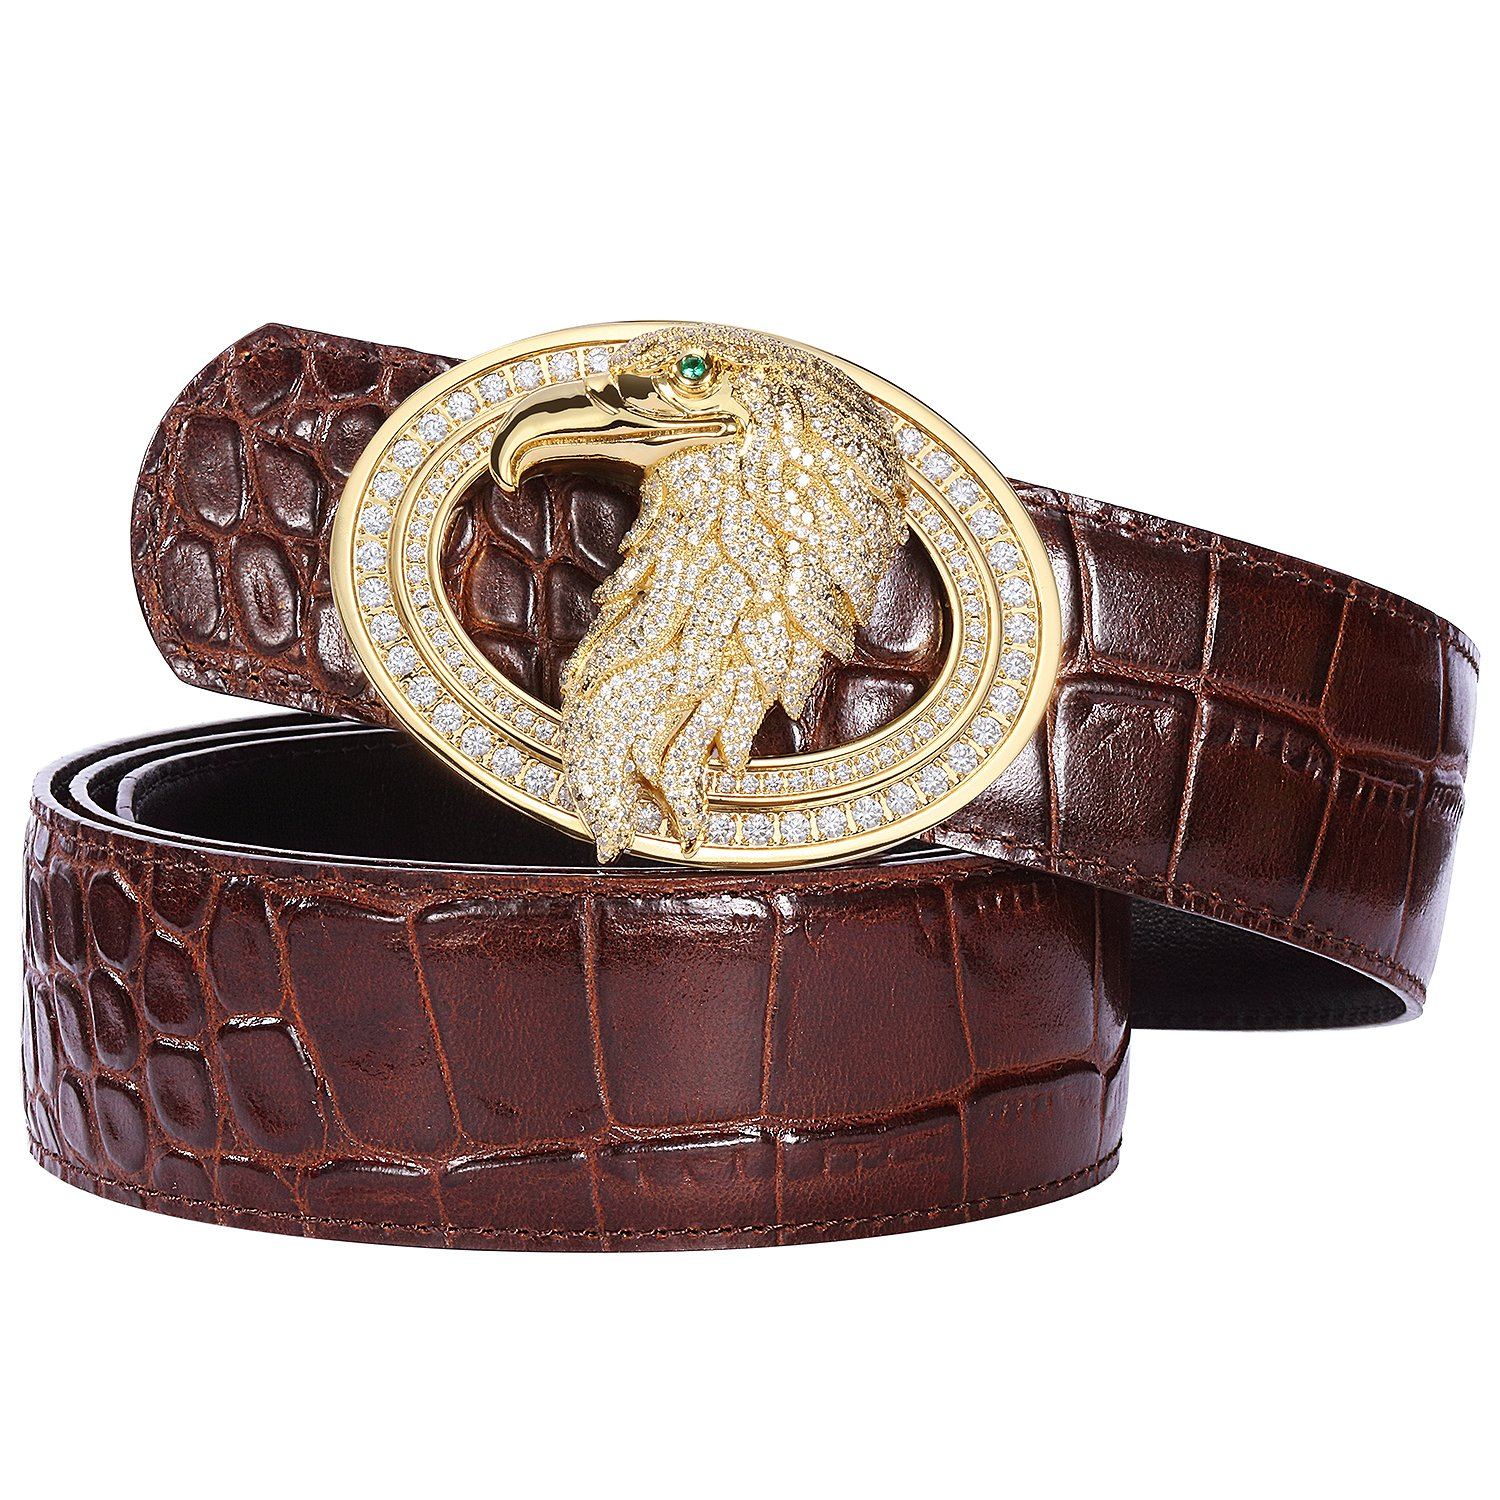 Men's Belts Luxury Genuine Leather Brown Dress Belt for Men Alligator Pattern Eagle Plaque Buckle